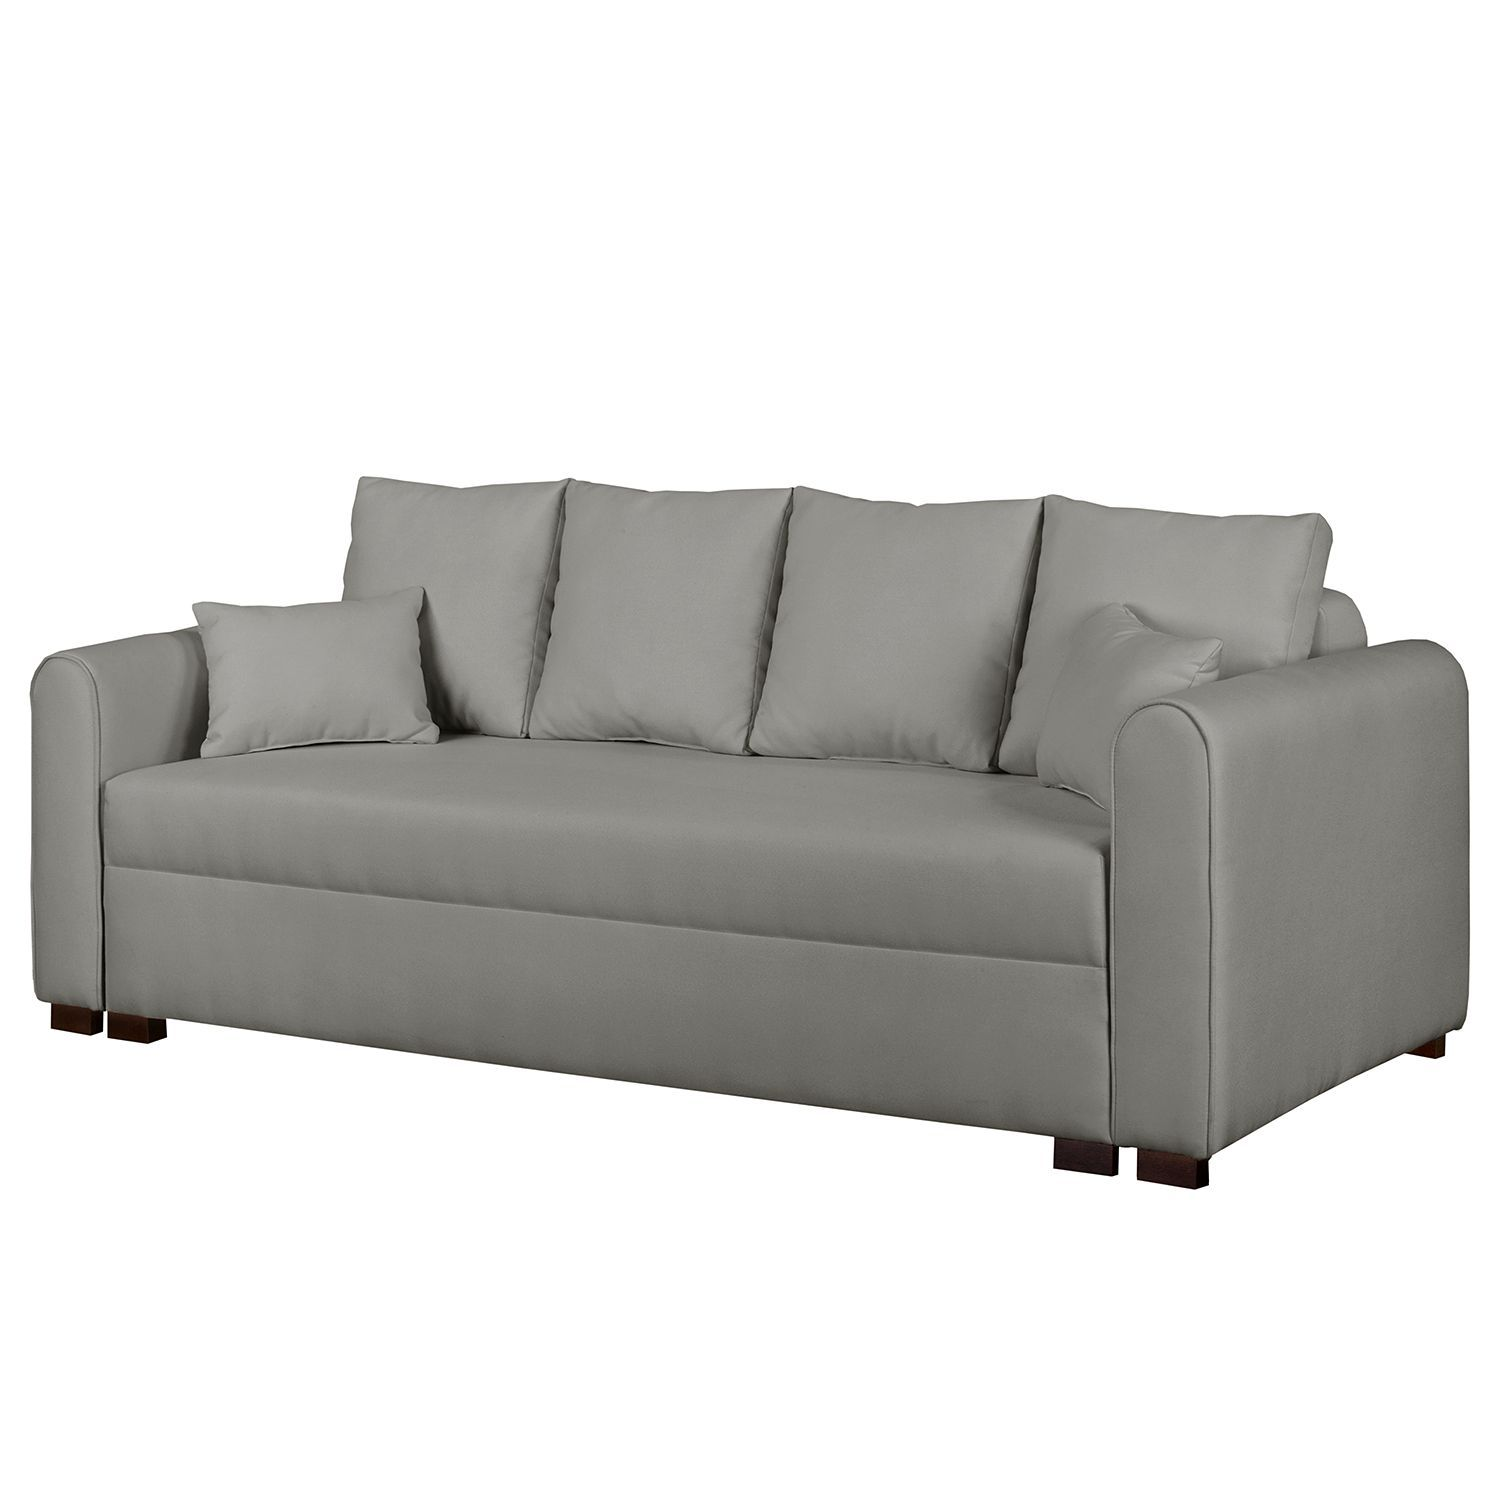 Grand Canape Frontino Convertible In 2020 Big Sofa Mit Schlaffunktion Kleine Couch Xxl Couch